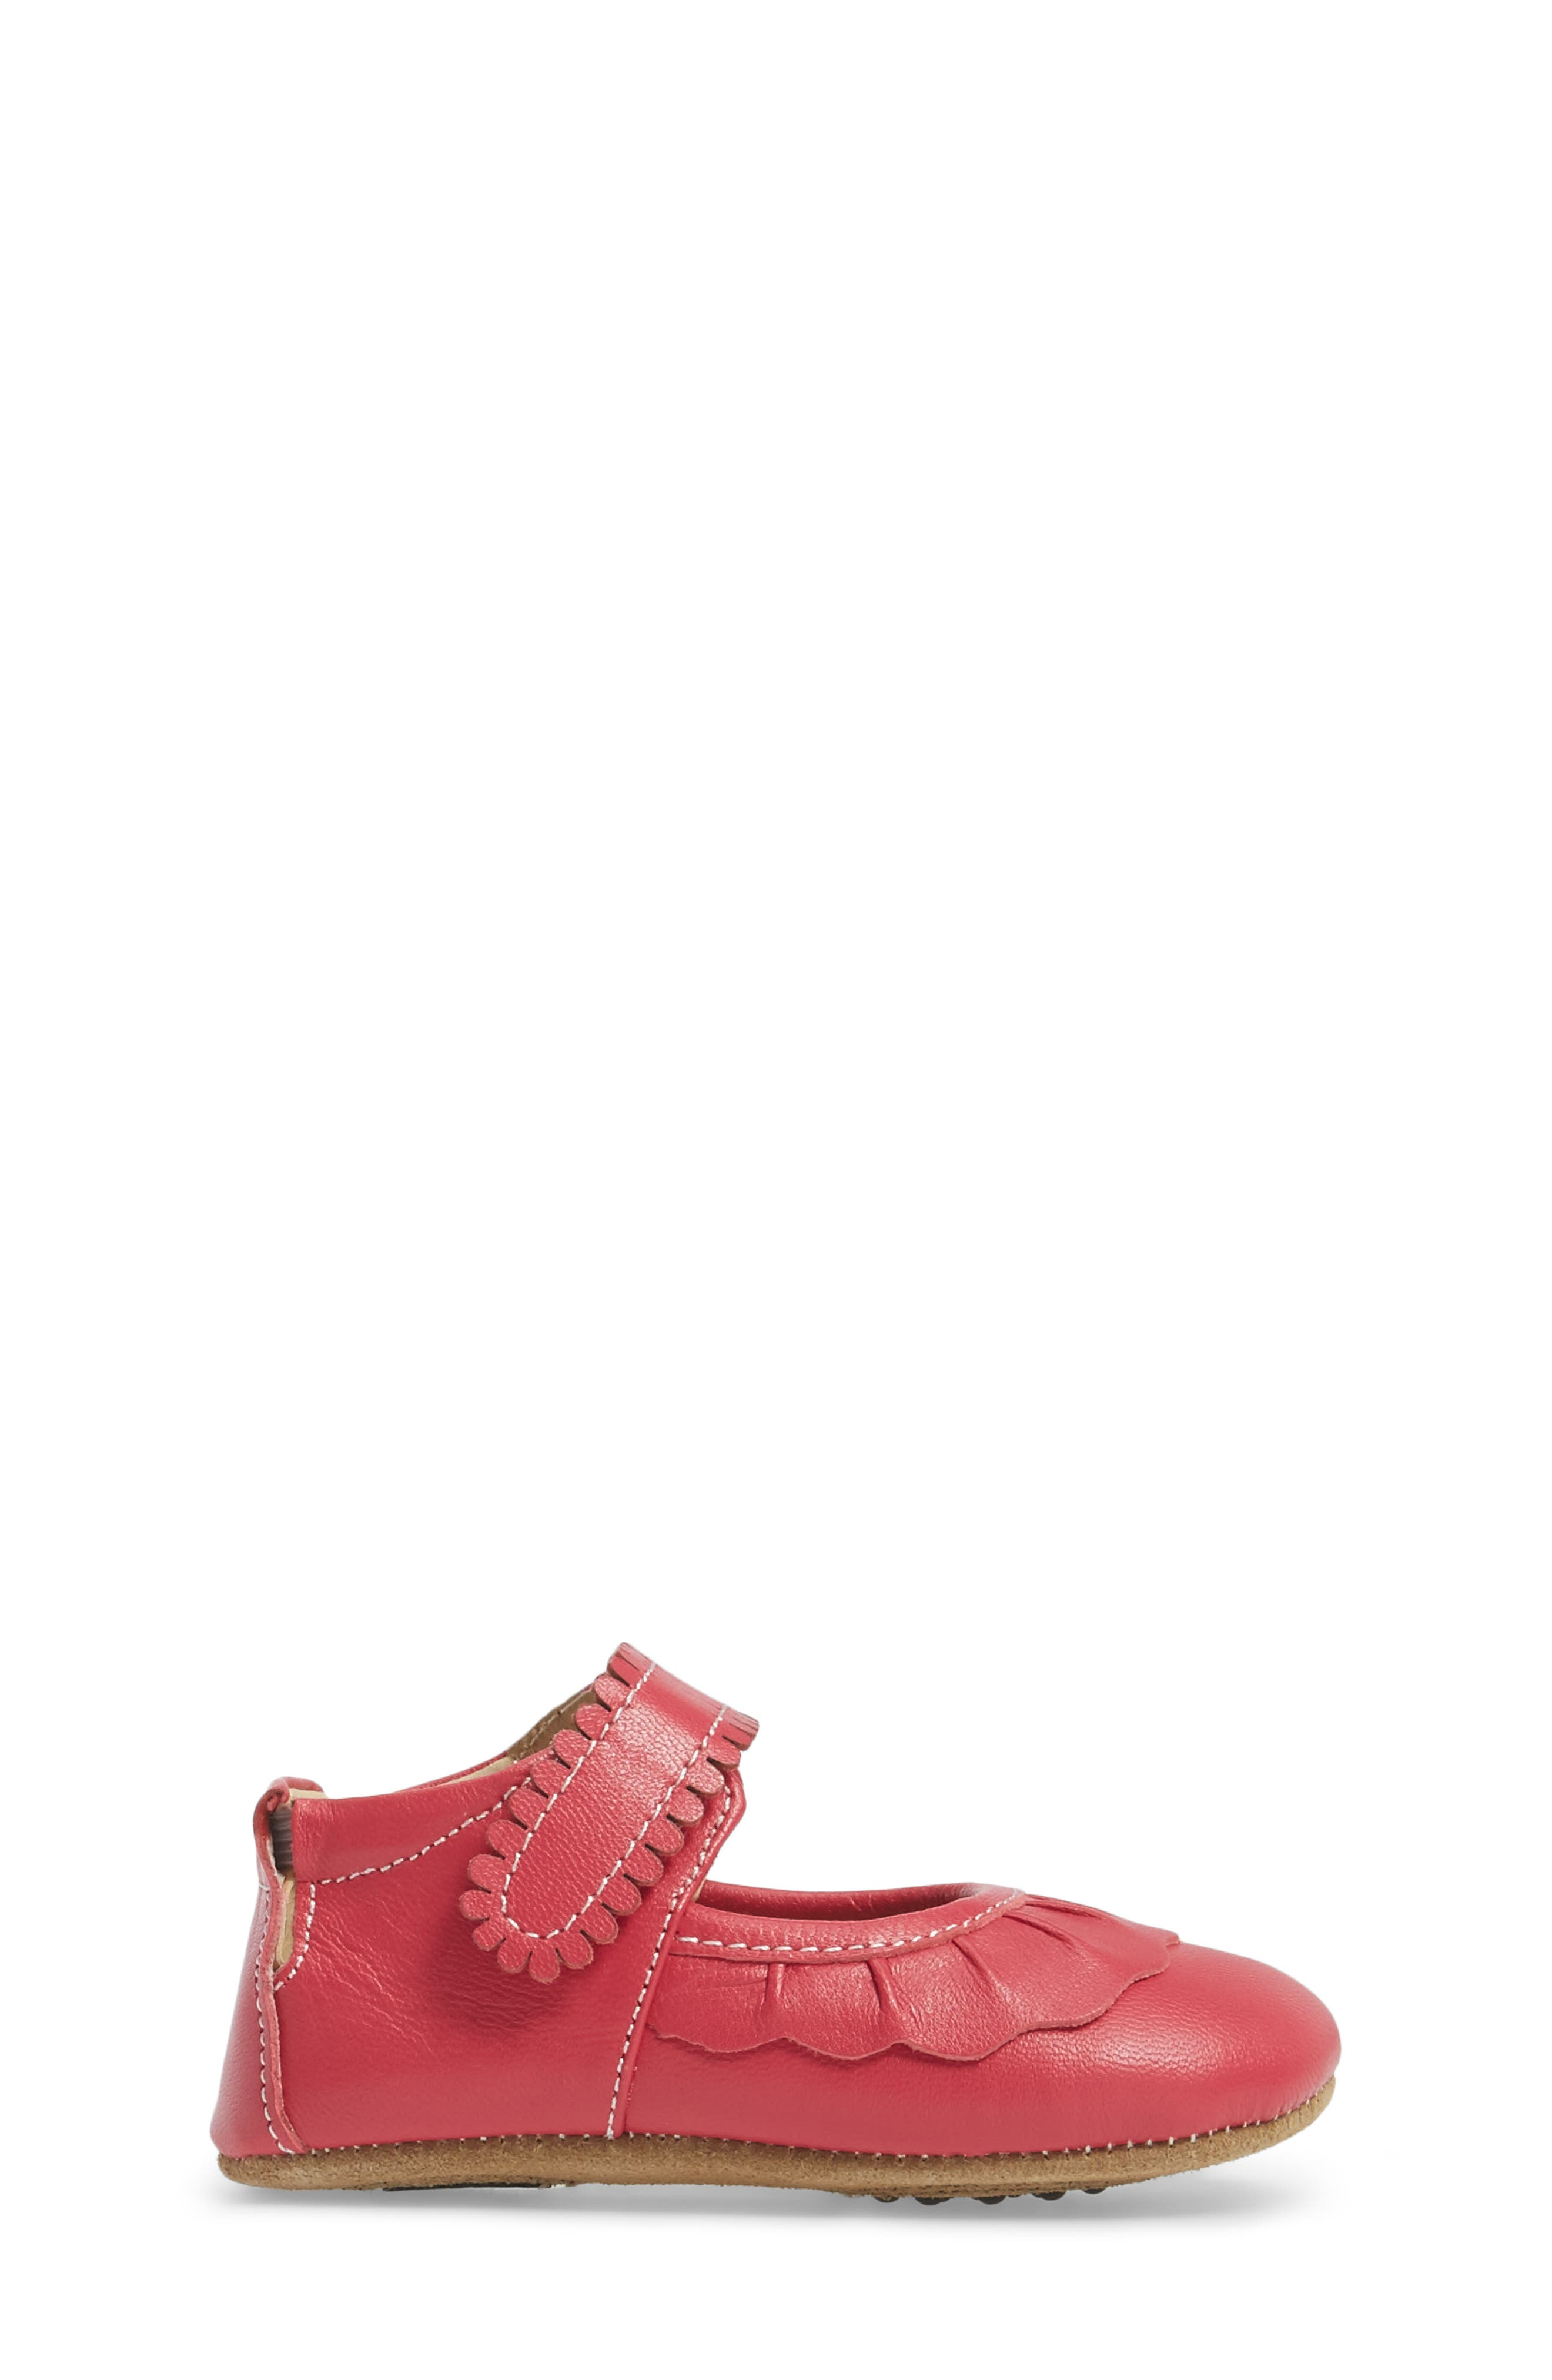 'Ruche' Mary Jane Crib Shoe,                             Alternate thumbnail 3, color,                             HOT PINK LEATHER